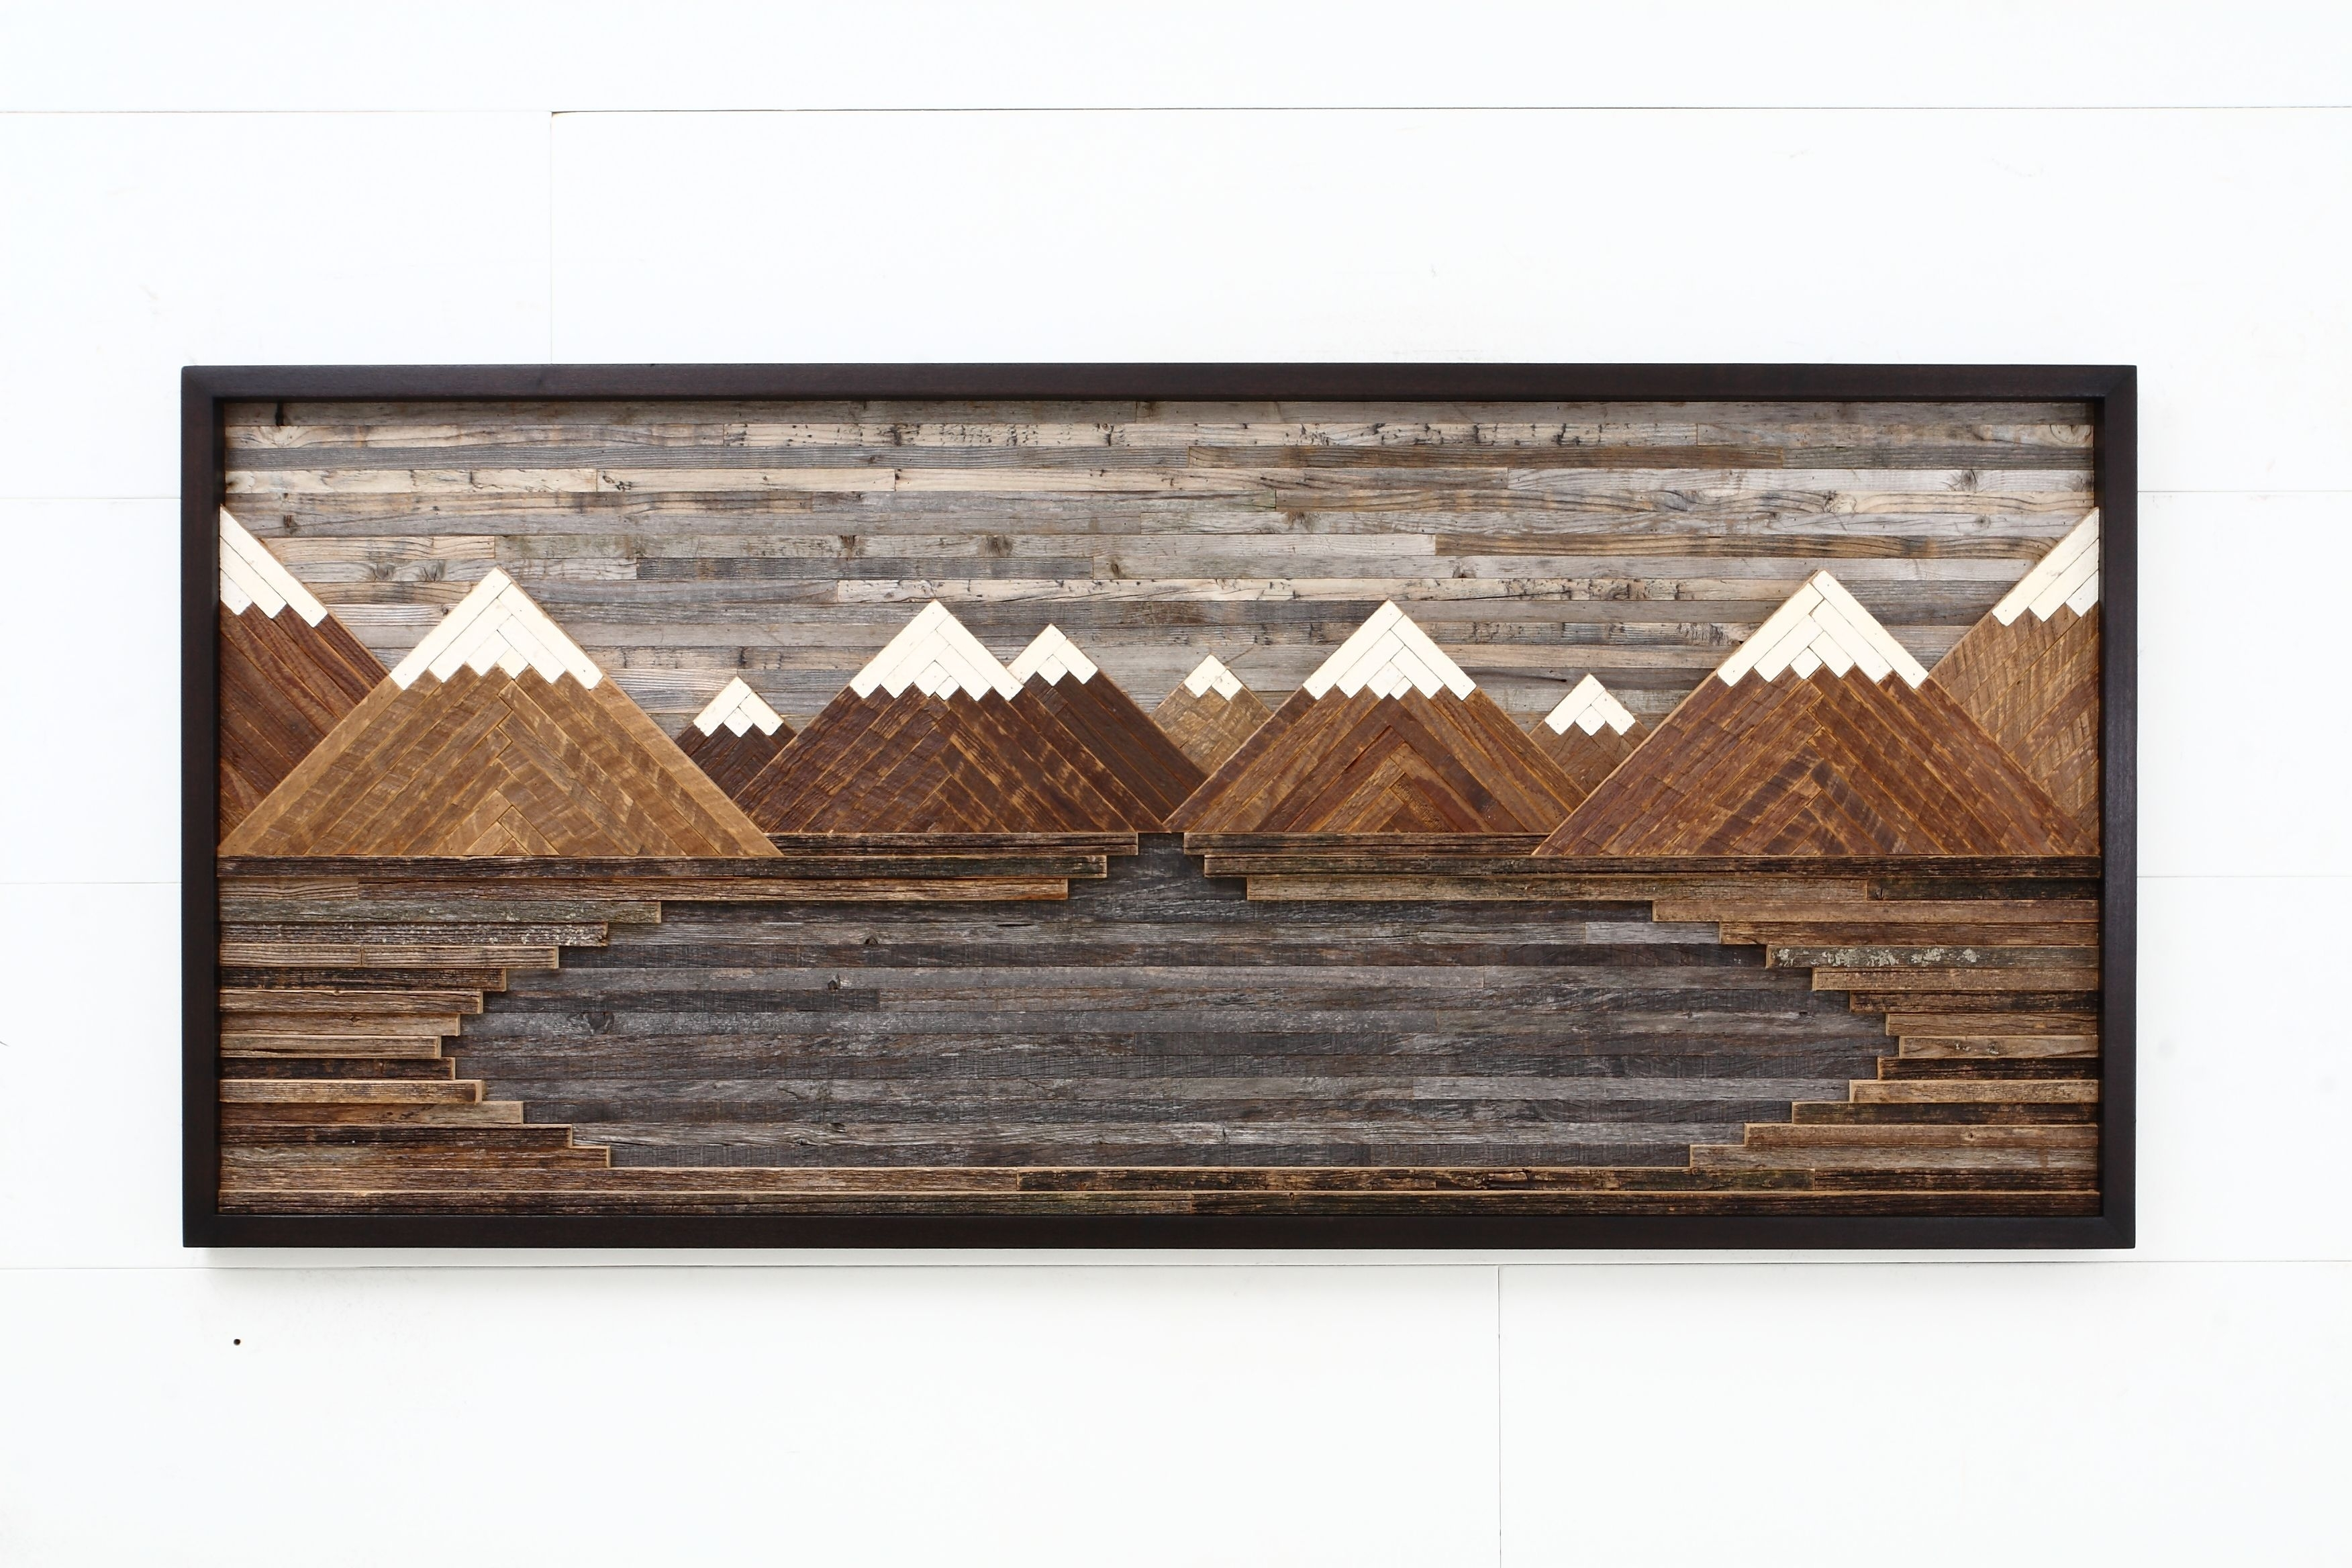 Custom Made Wood Wall Art, Mountain Landscape, 48Carpentercraig Inside Most Popular Personalized Wood Wall Art (View 3 of 20)